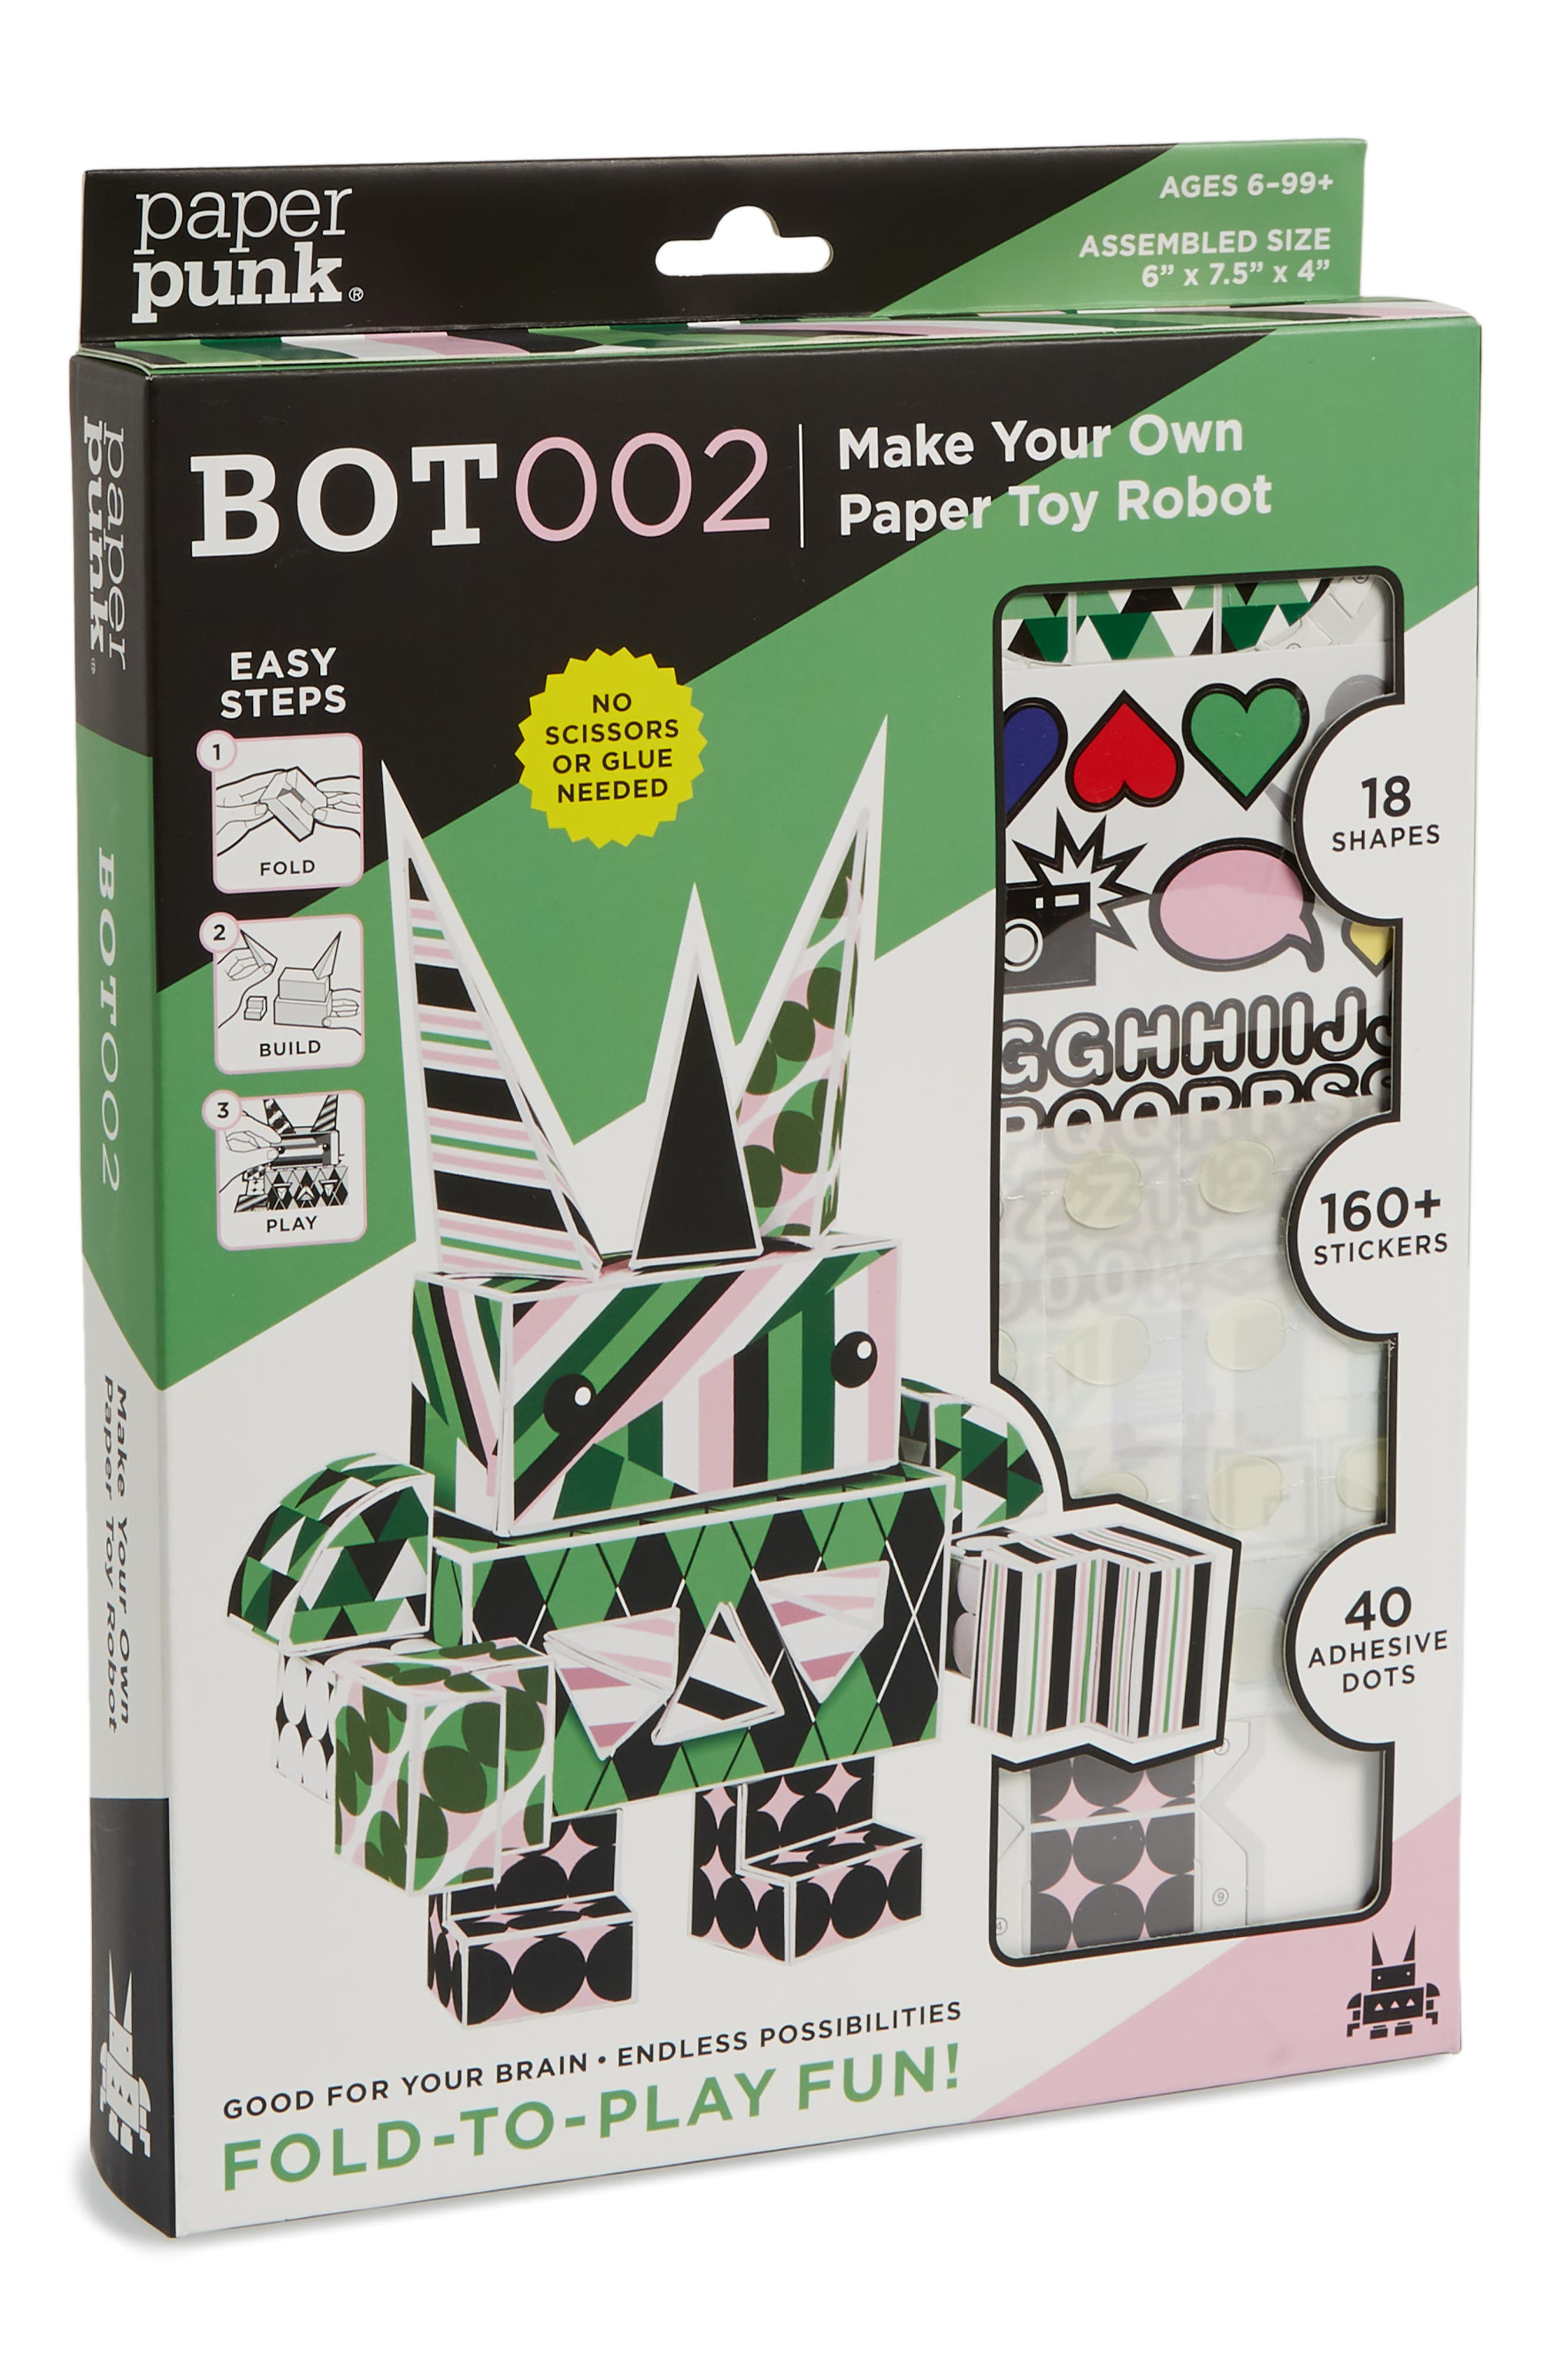 Bot002 Make Your Own Paper Toy Robot Kit,                             Main thumbnail 1, color,